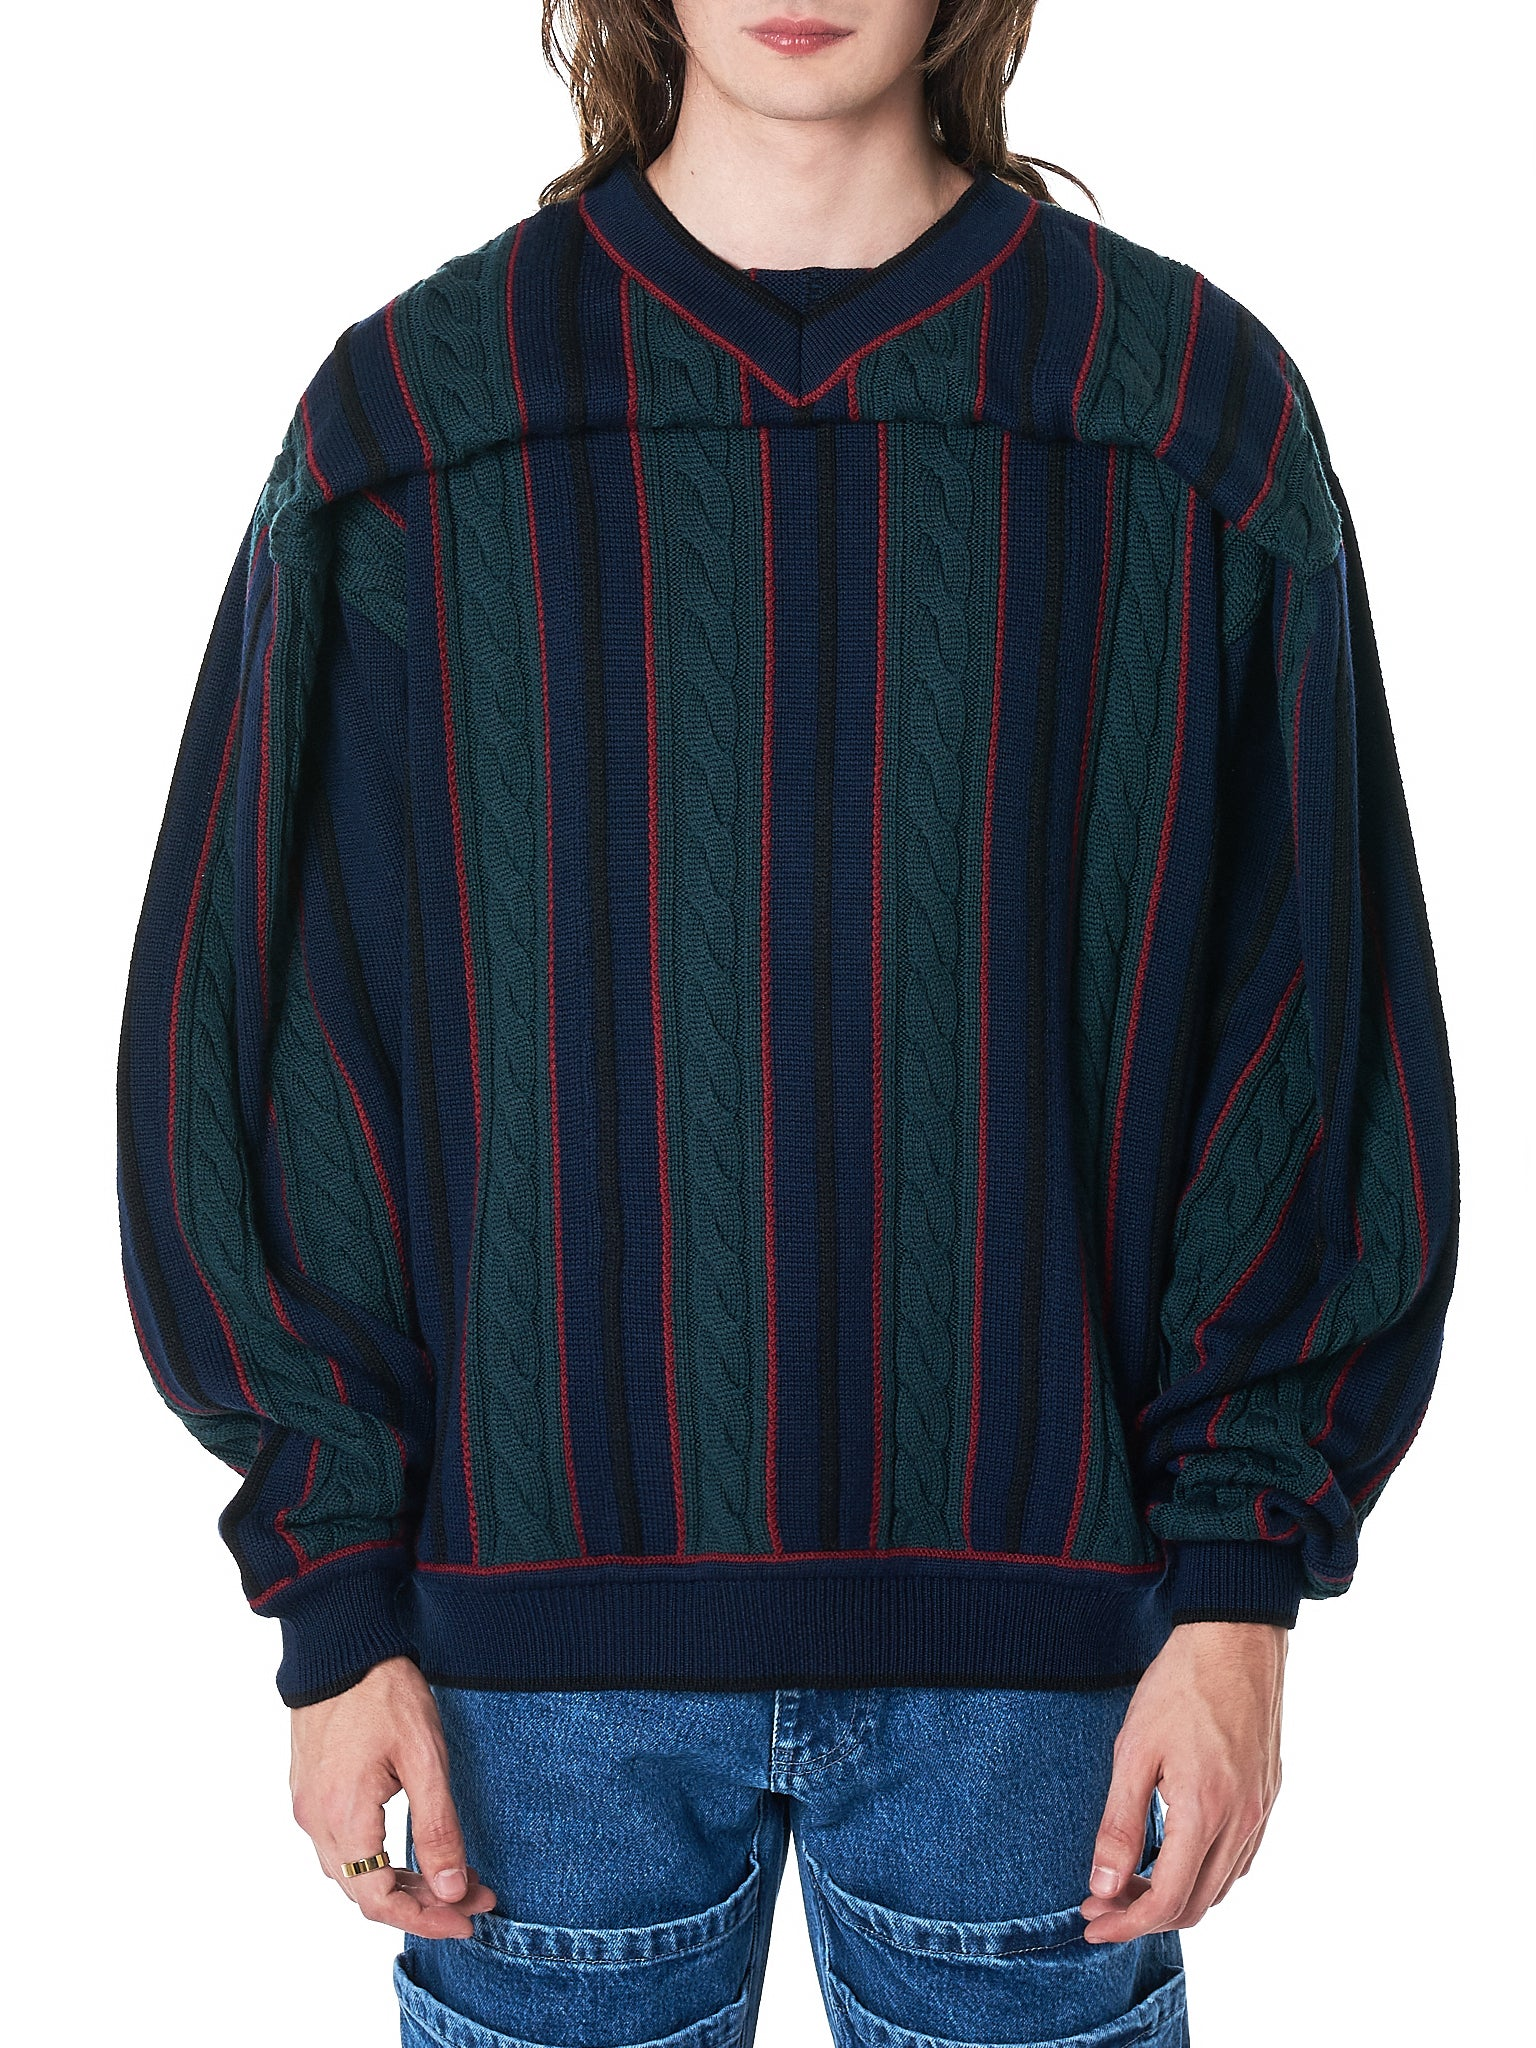 Y/Project Sweater - Hlorenzo Front